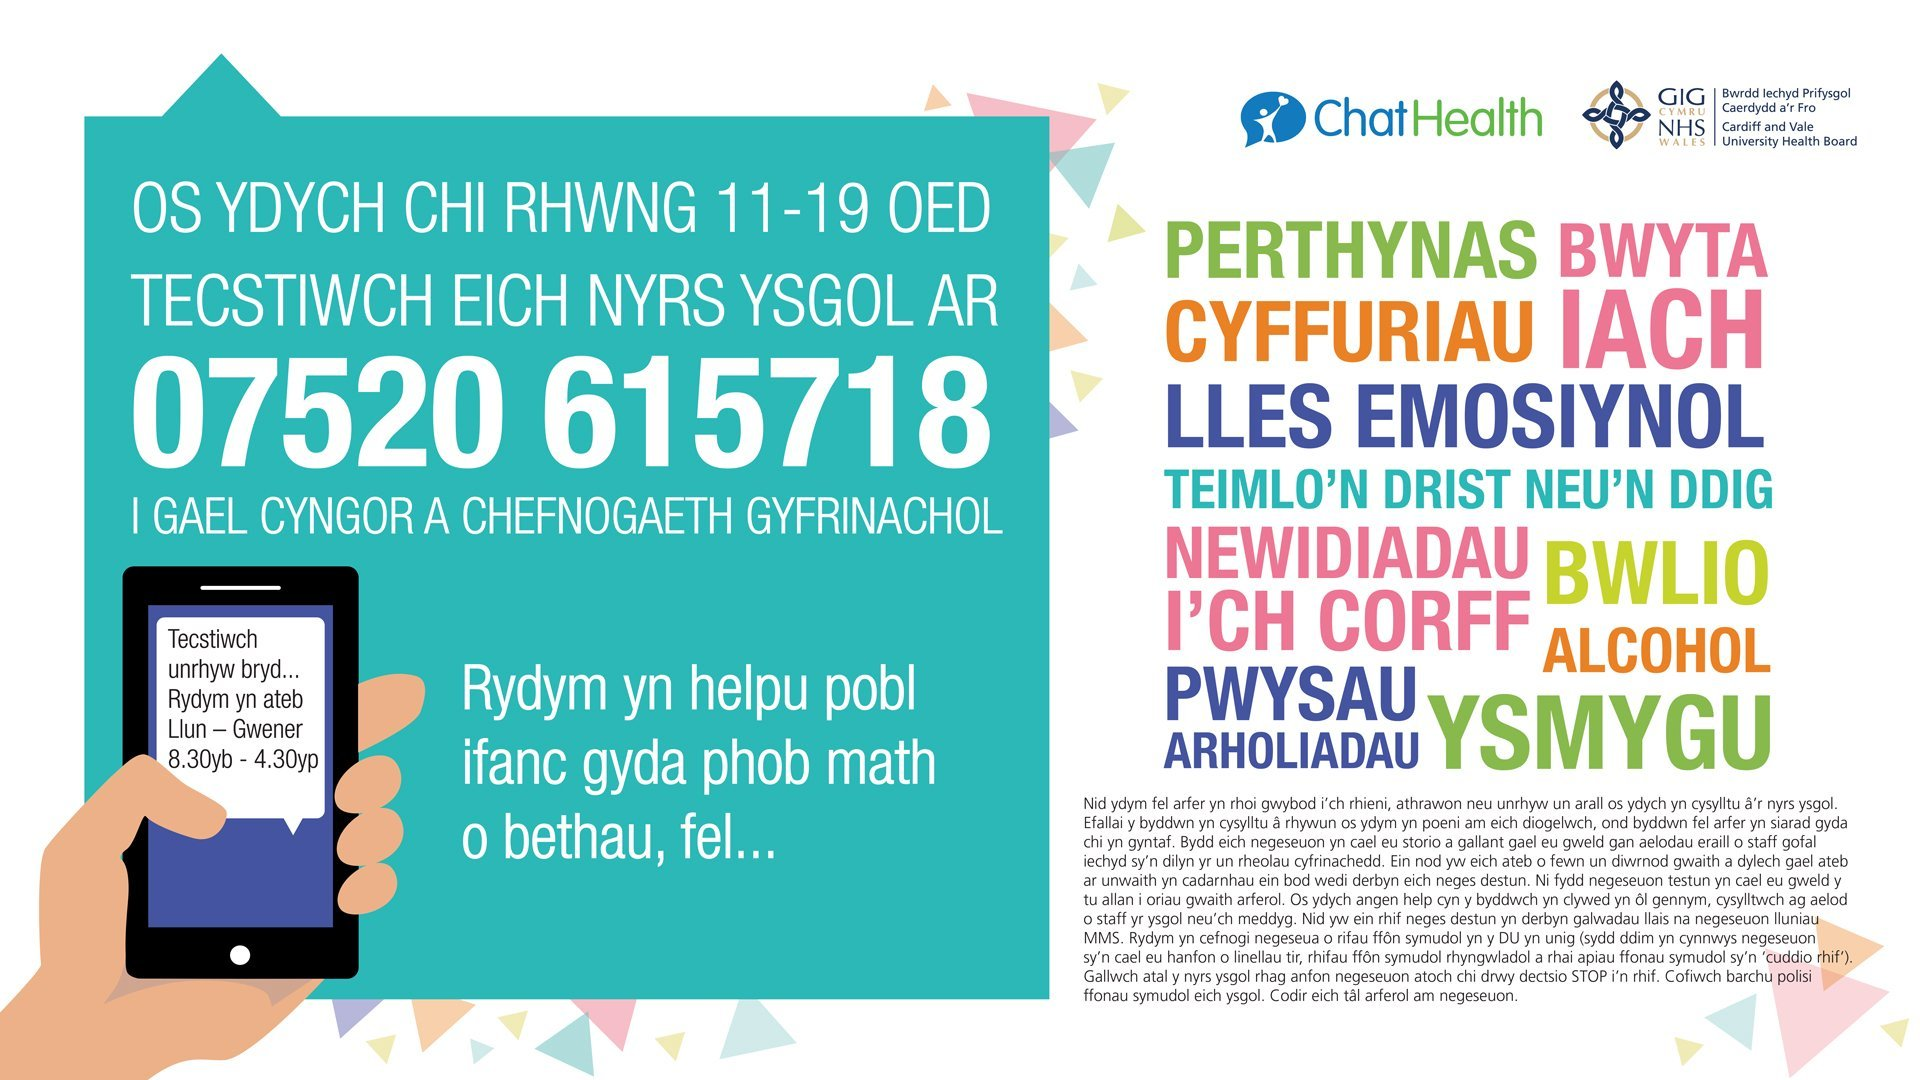 REBECCA STRINGER Chat health WELSH SCREEN POSTER 1920X1080